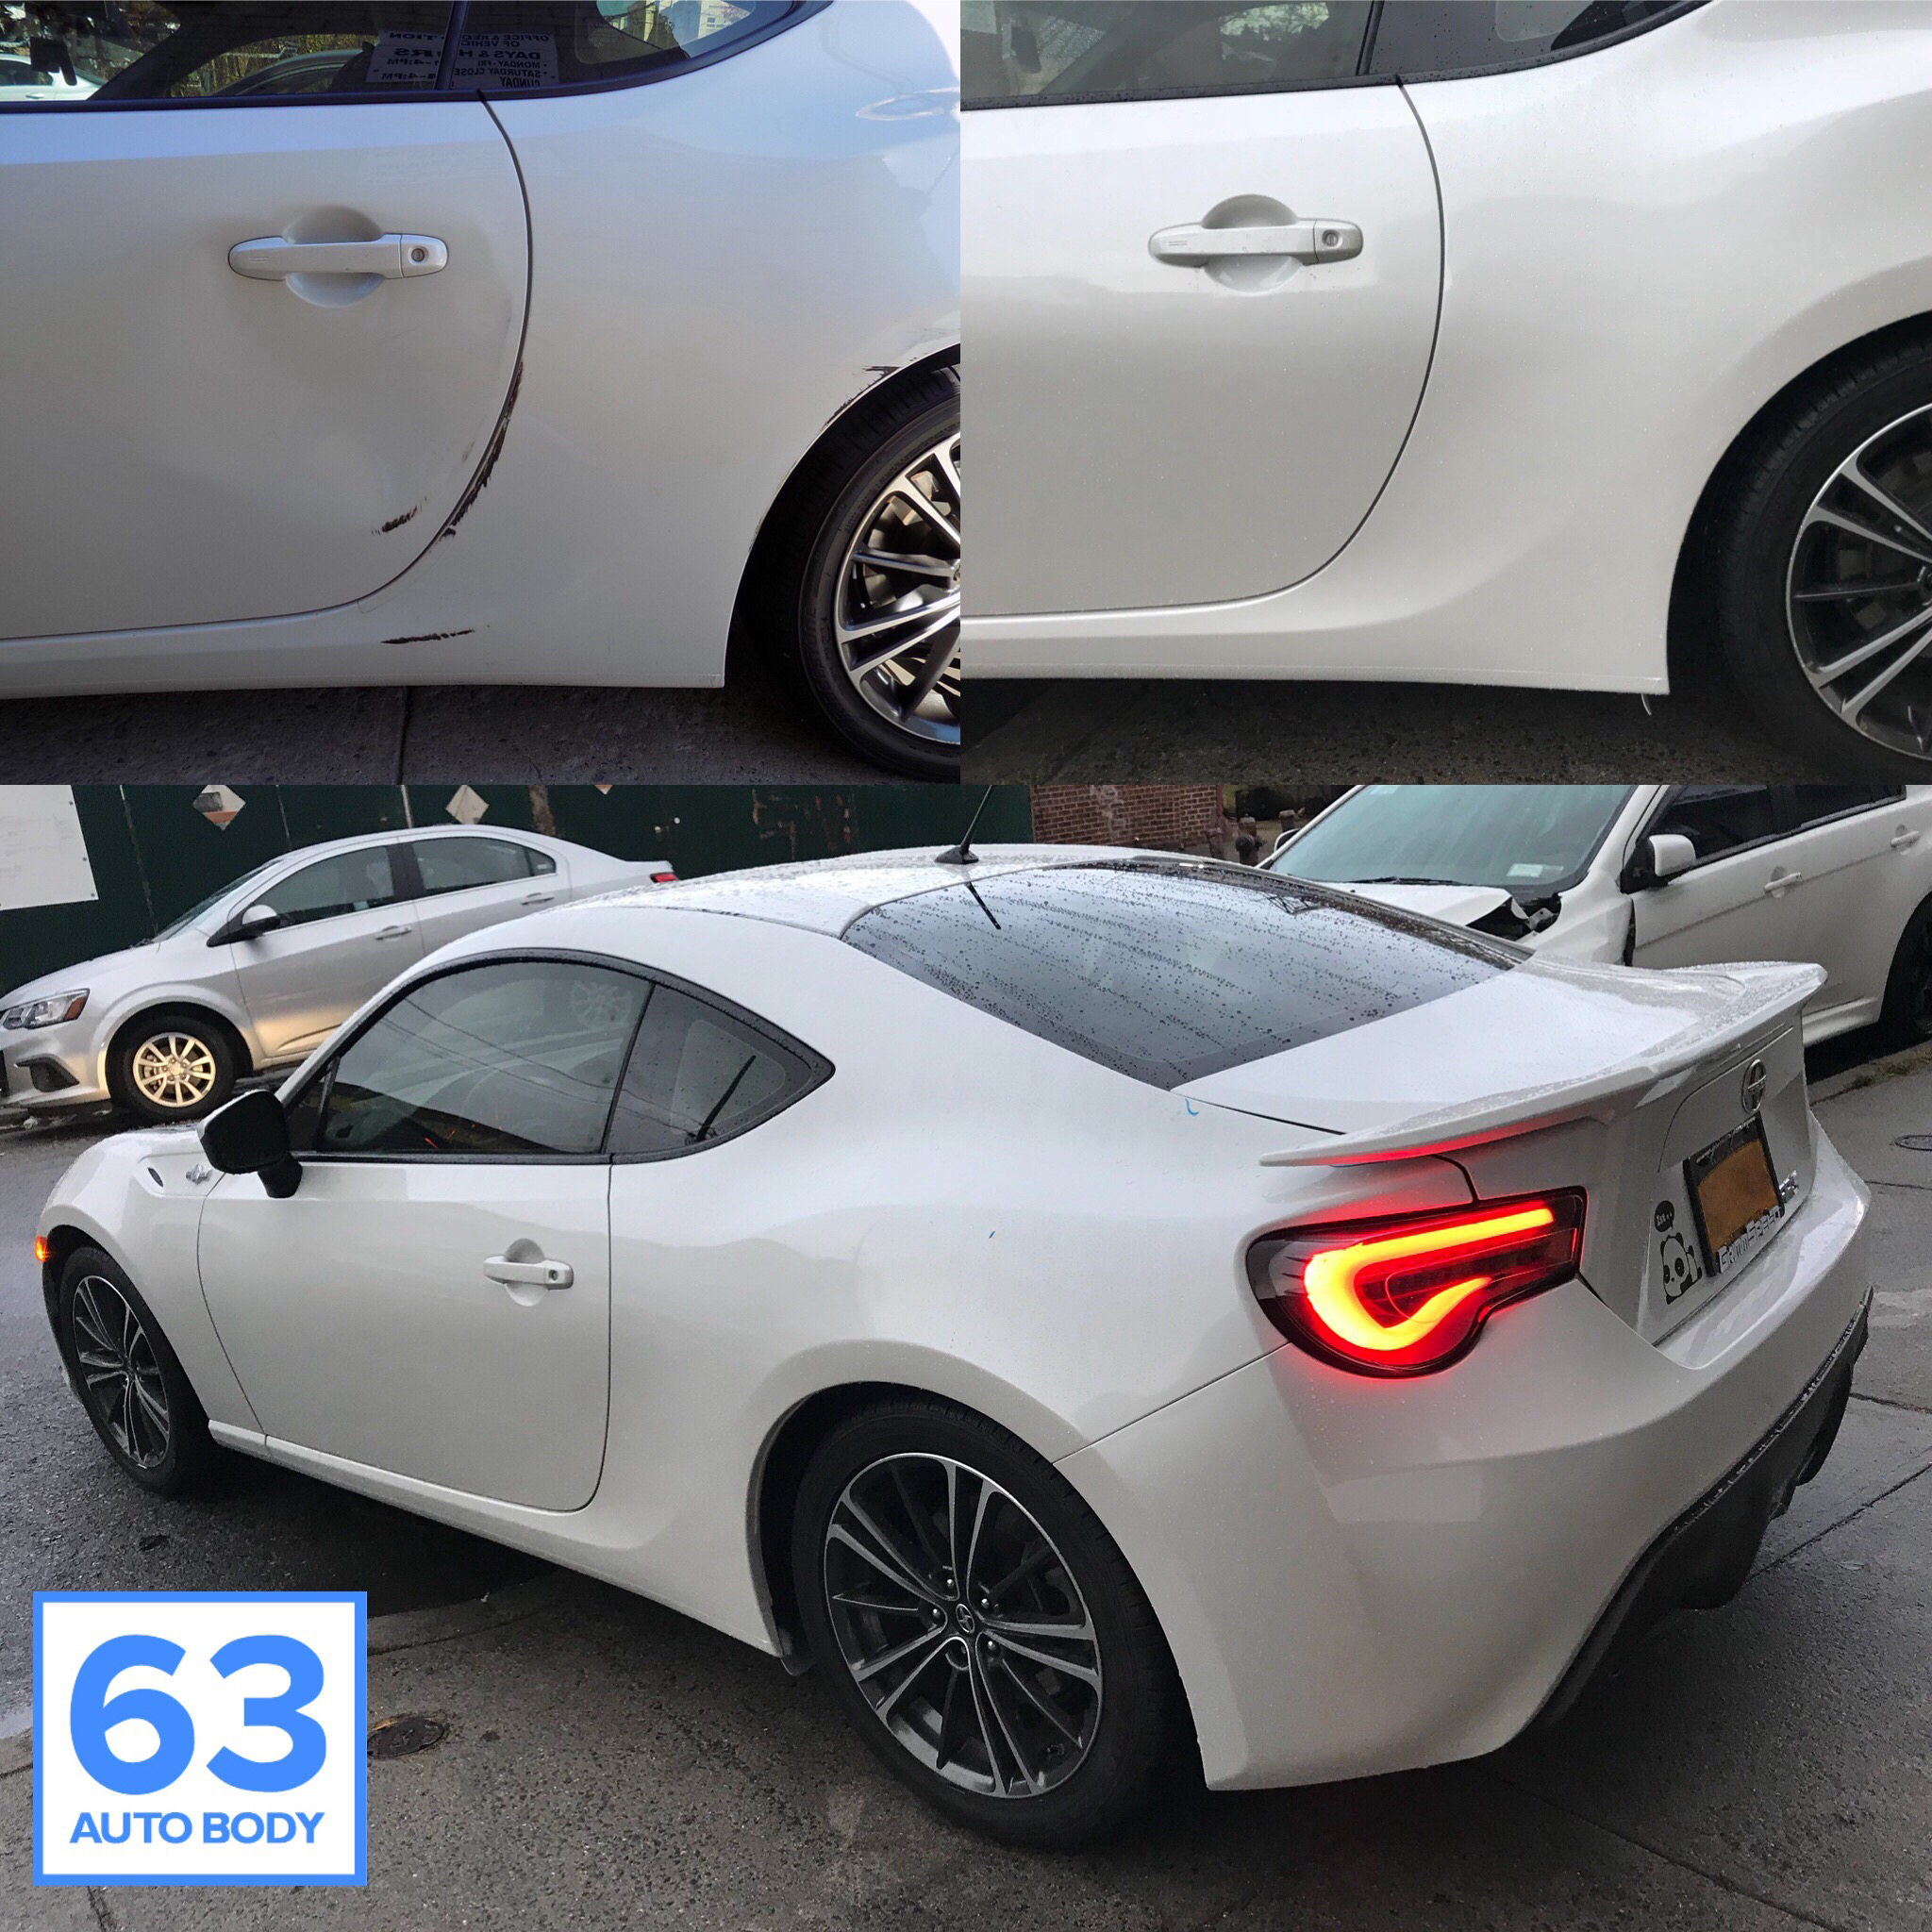 2014 Scion Frs White.jpg